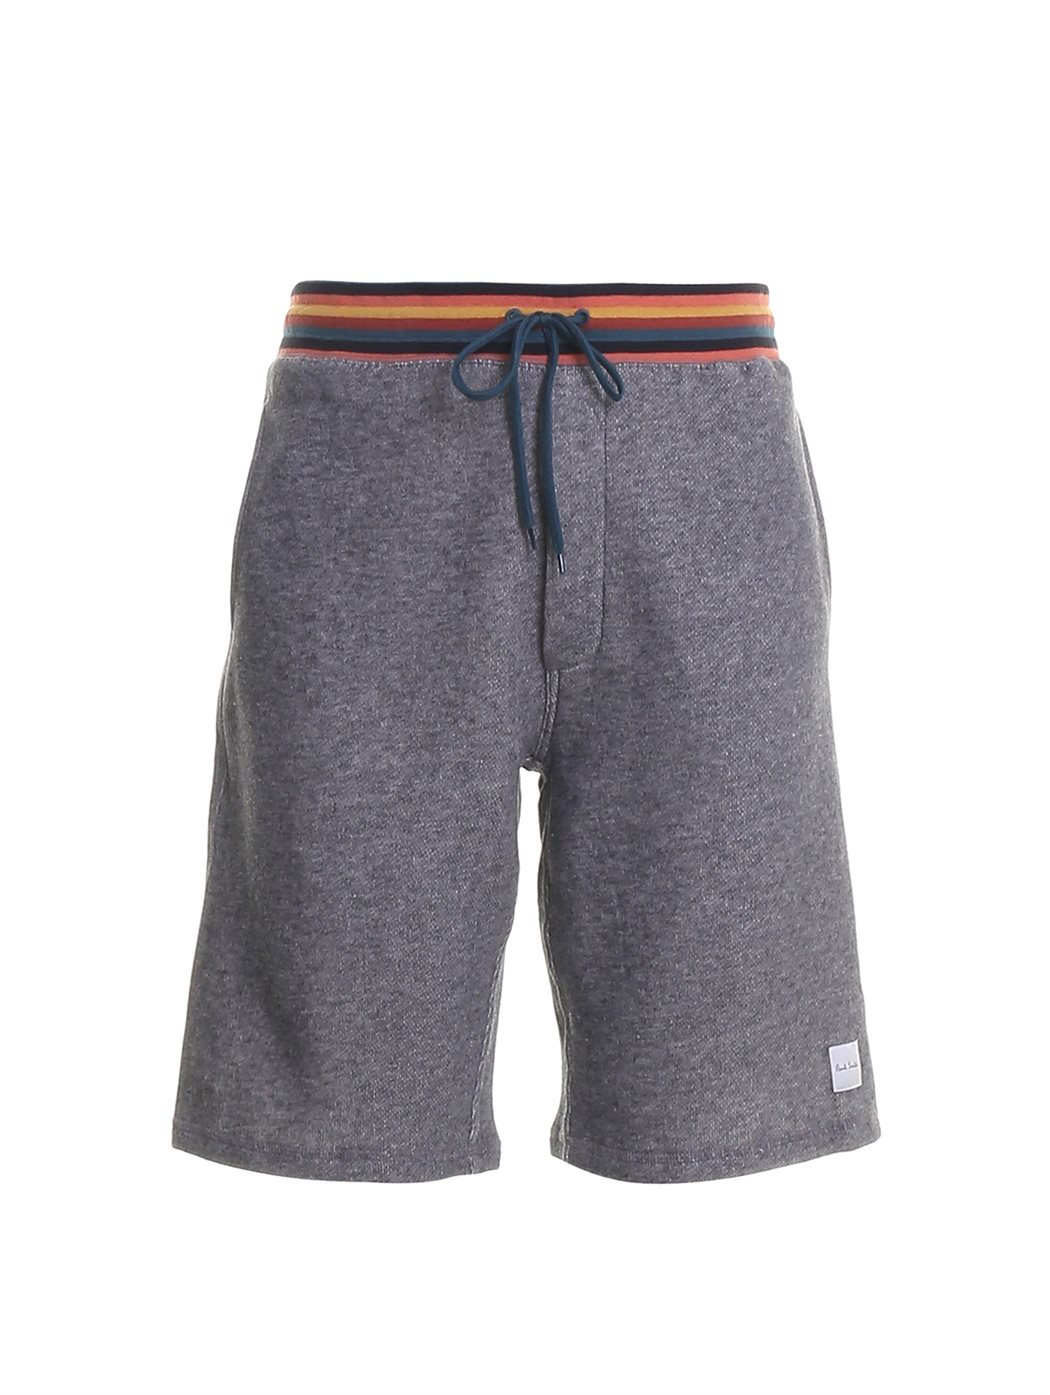 PAUL SMITH M1A-374B 70-GREY INTIMO